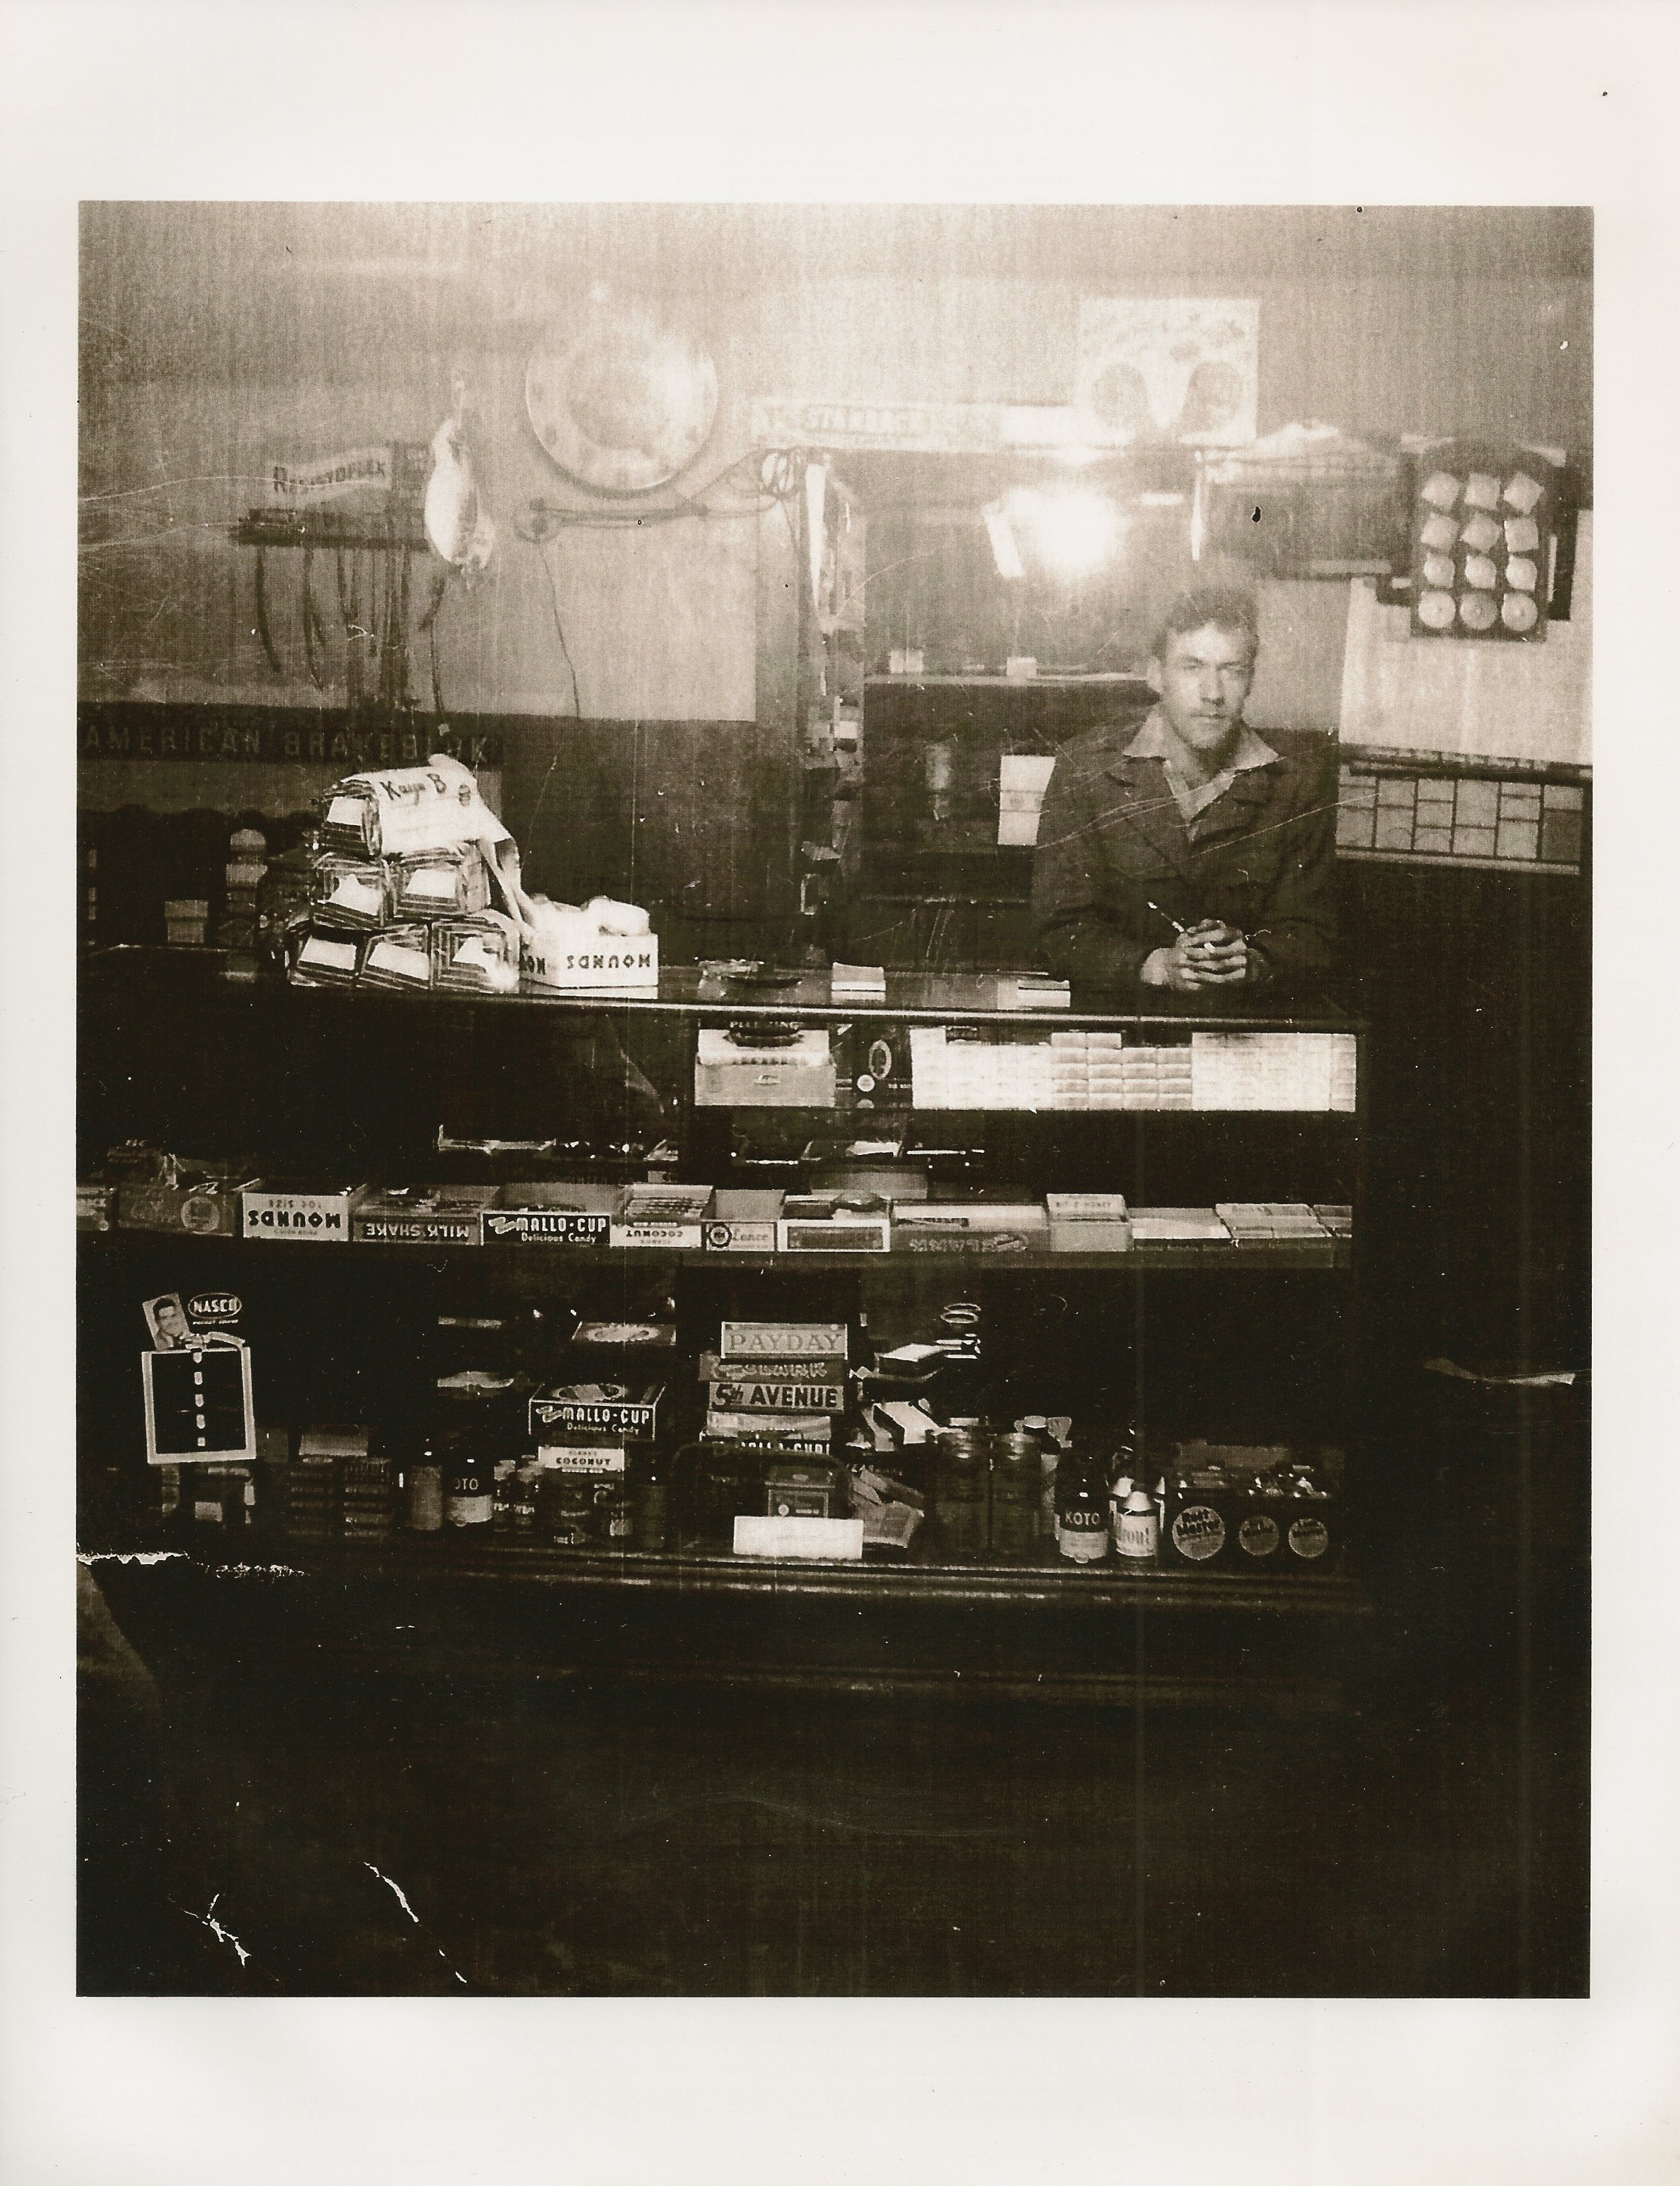 Paul Davis who operated the Esso Station in the 1940s-1950s